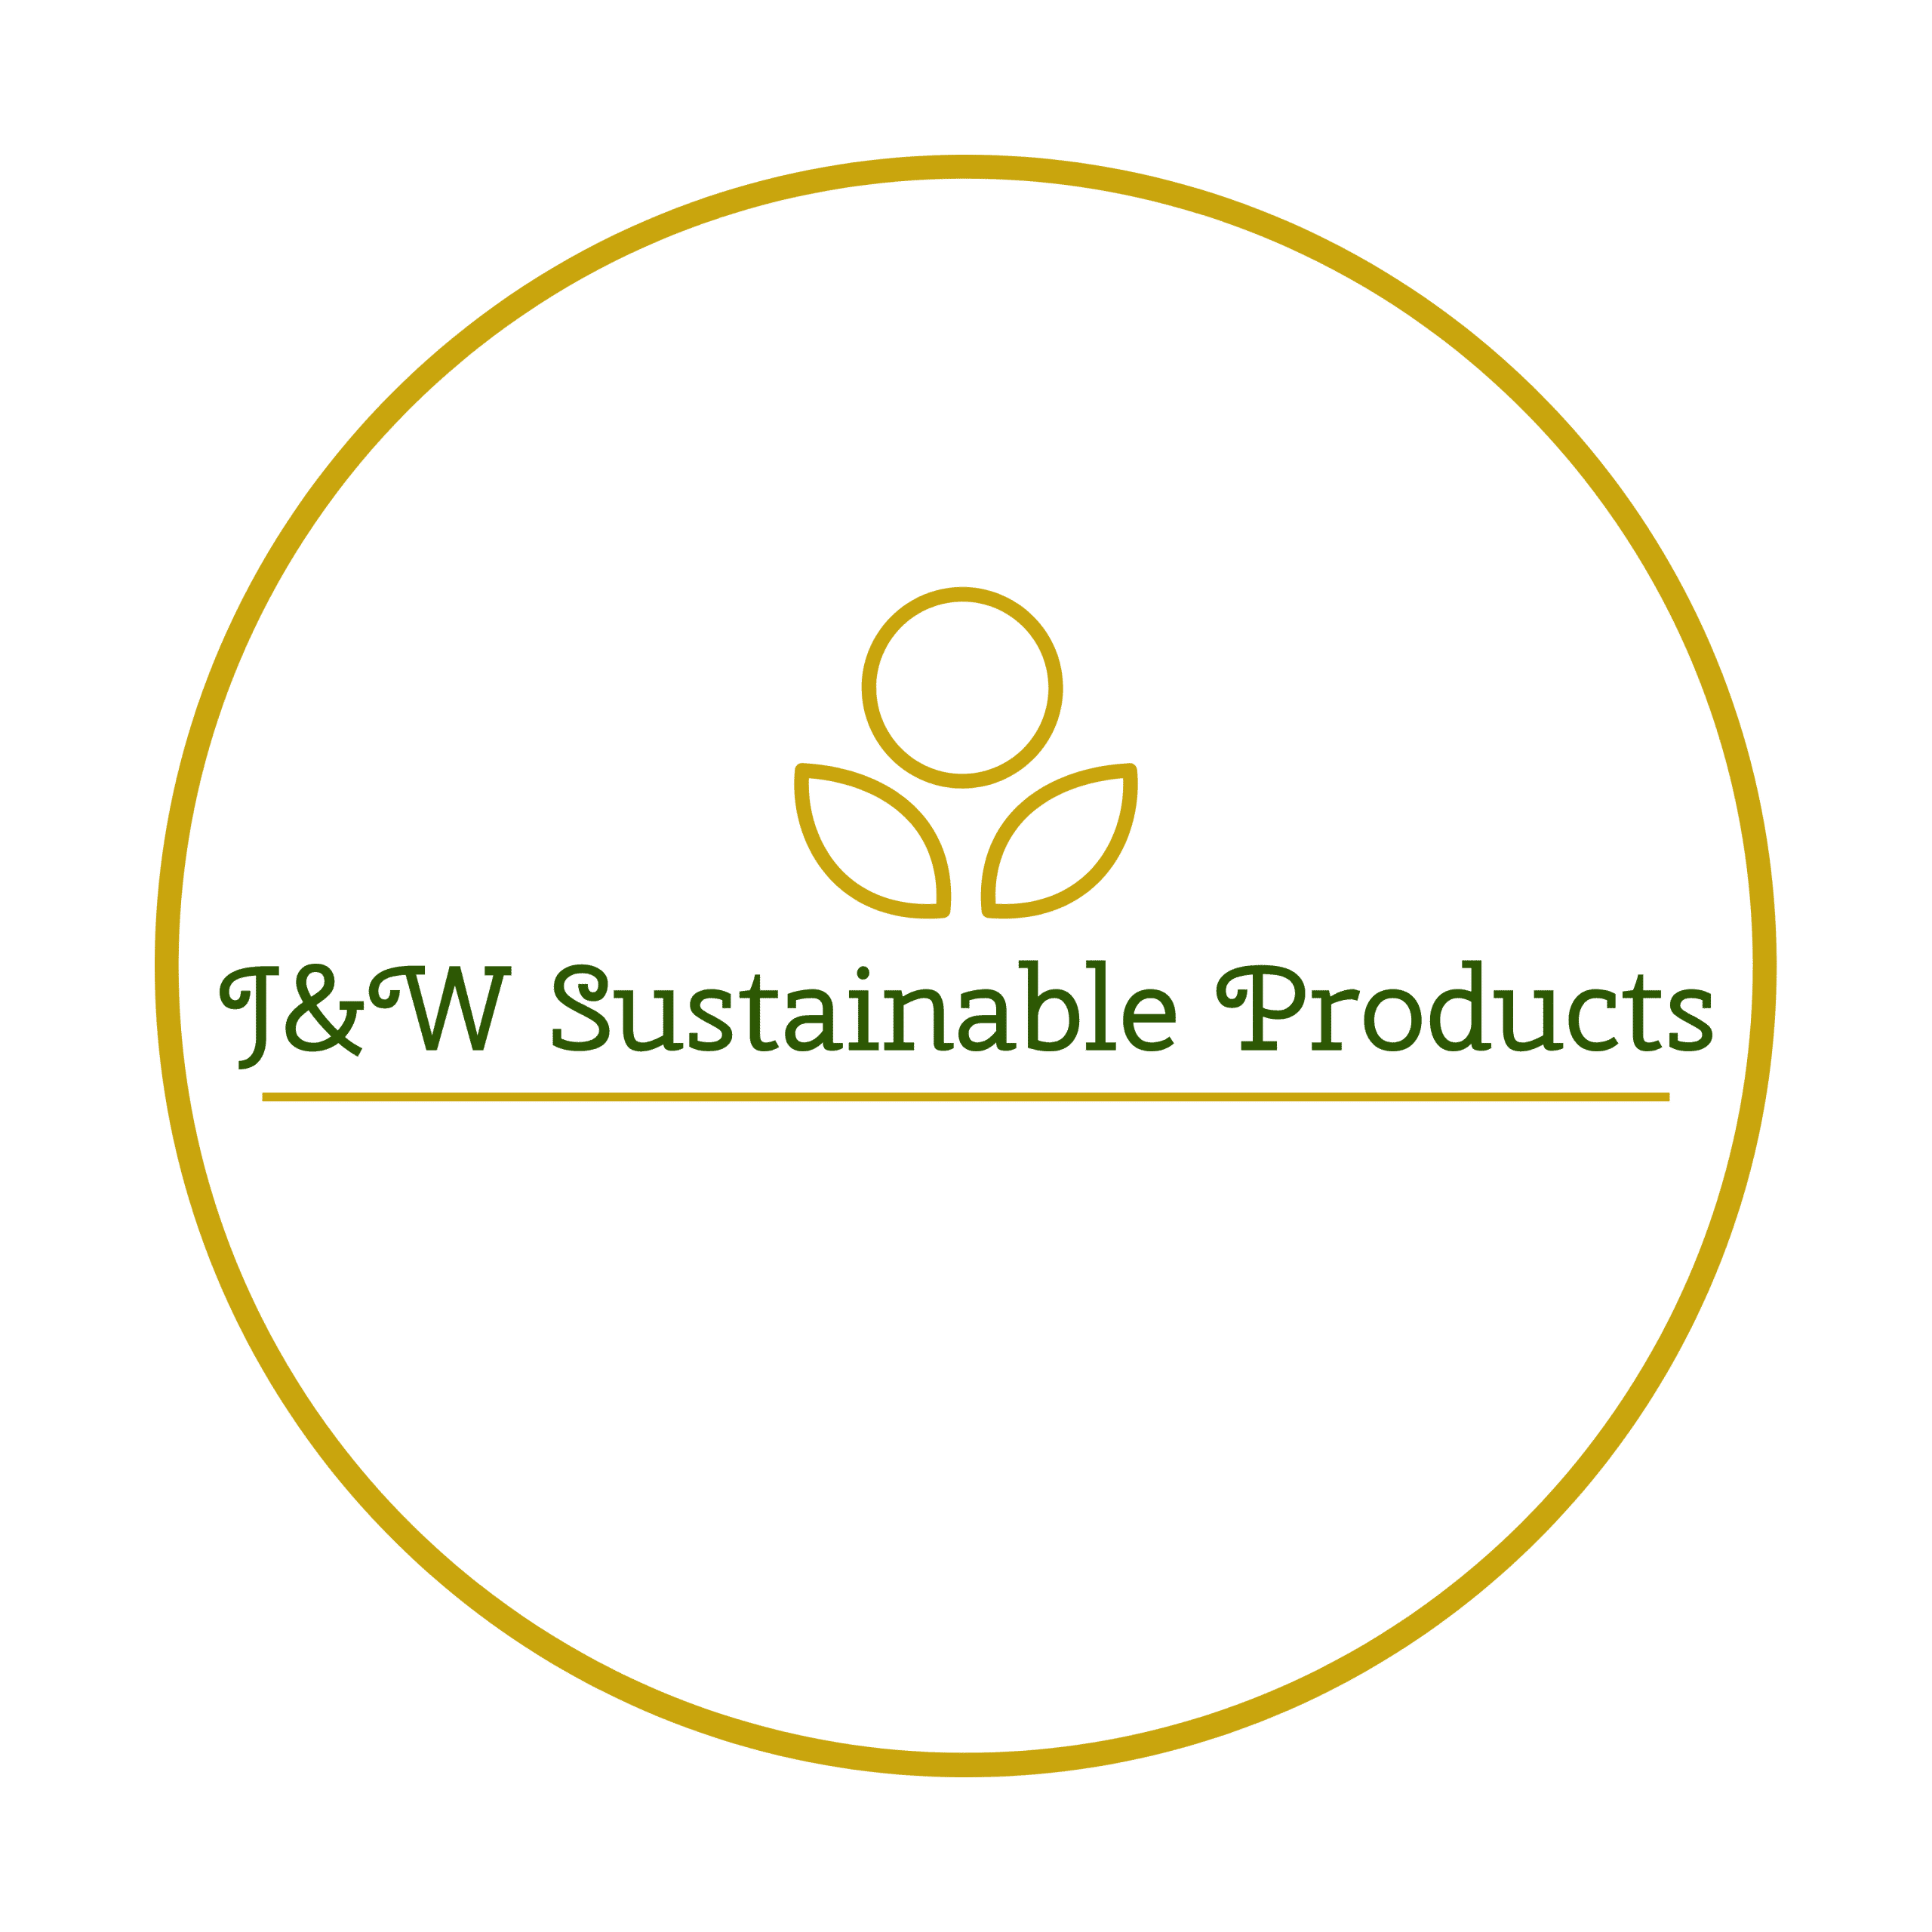 J&W Sustainable Products